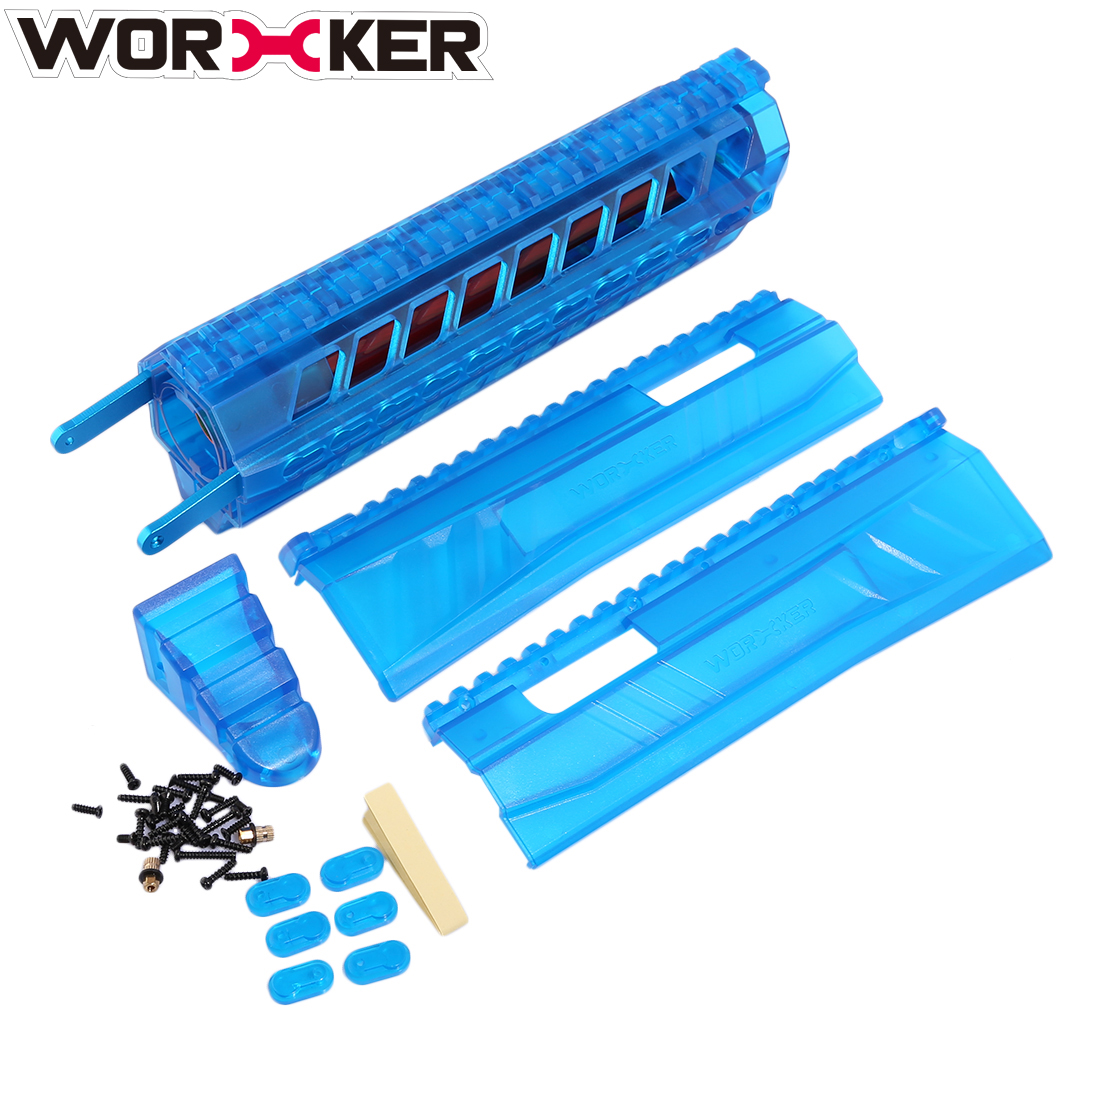 Worker Modified Integrated Built-in Front Pull-down Kit for Nerf Retaliator Toy For Children- Transparent Blue цена и фото